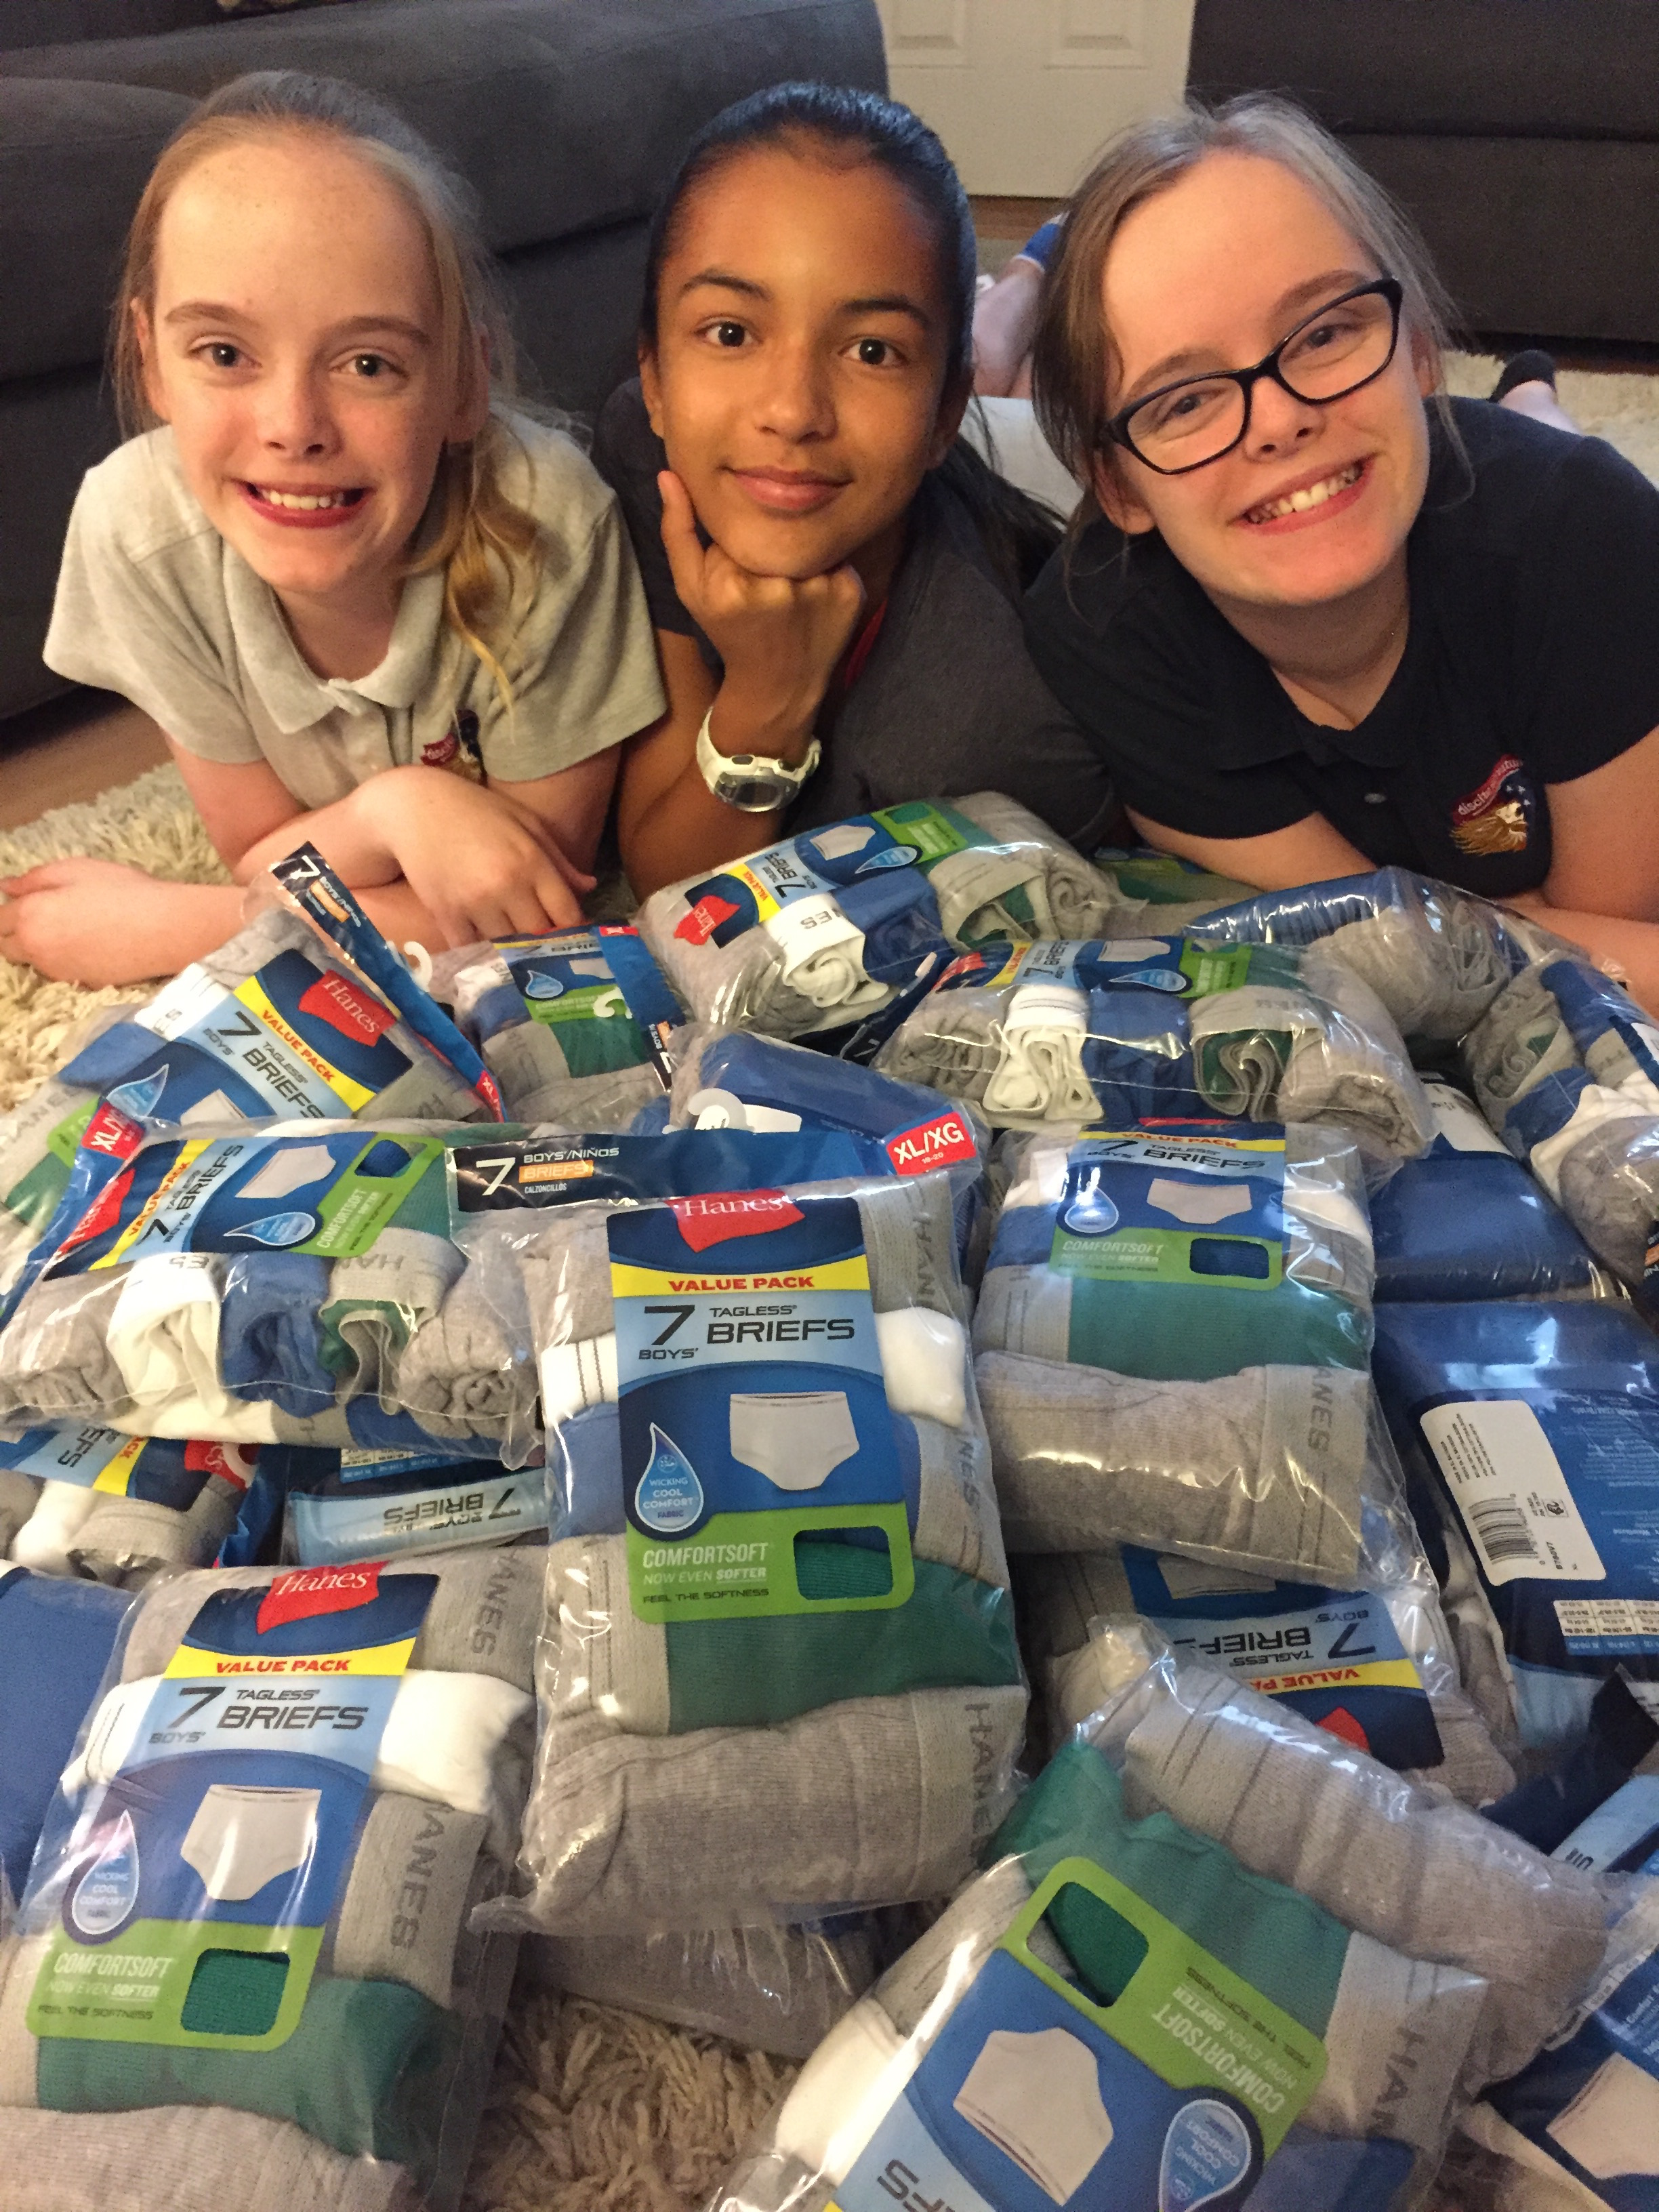 Mirabel Atkinson,left, Isabel Marchena, center, and Sofia Atkinson, right, posing with a few of the more than 7,000 pairs of underwear they collected and donated to the Children's National Medical Center.